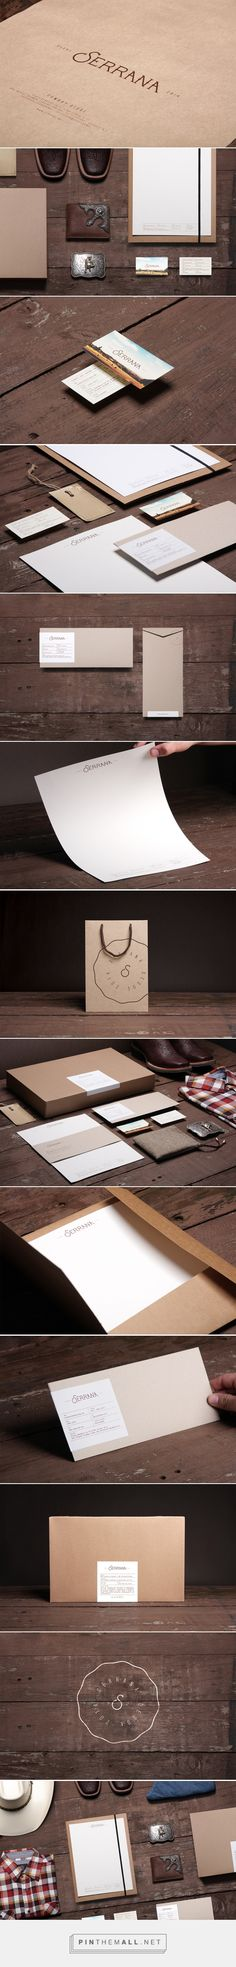 SERRANA - http://theboid.com... - a grouped images picture - Pin Them All